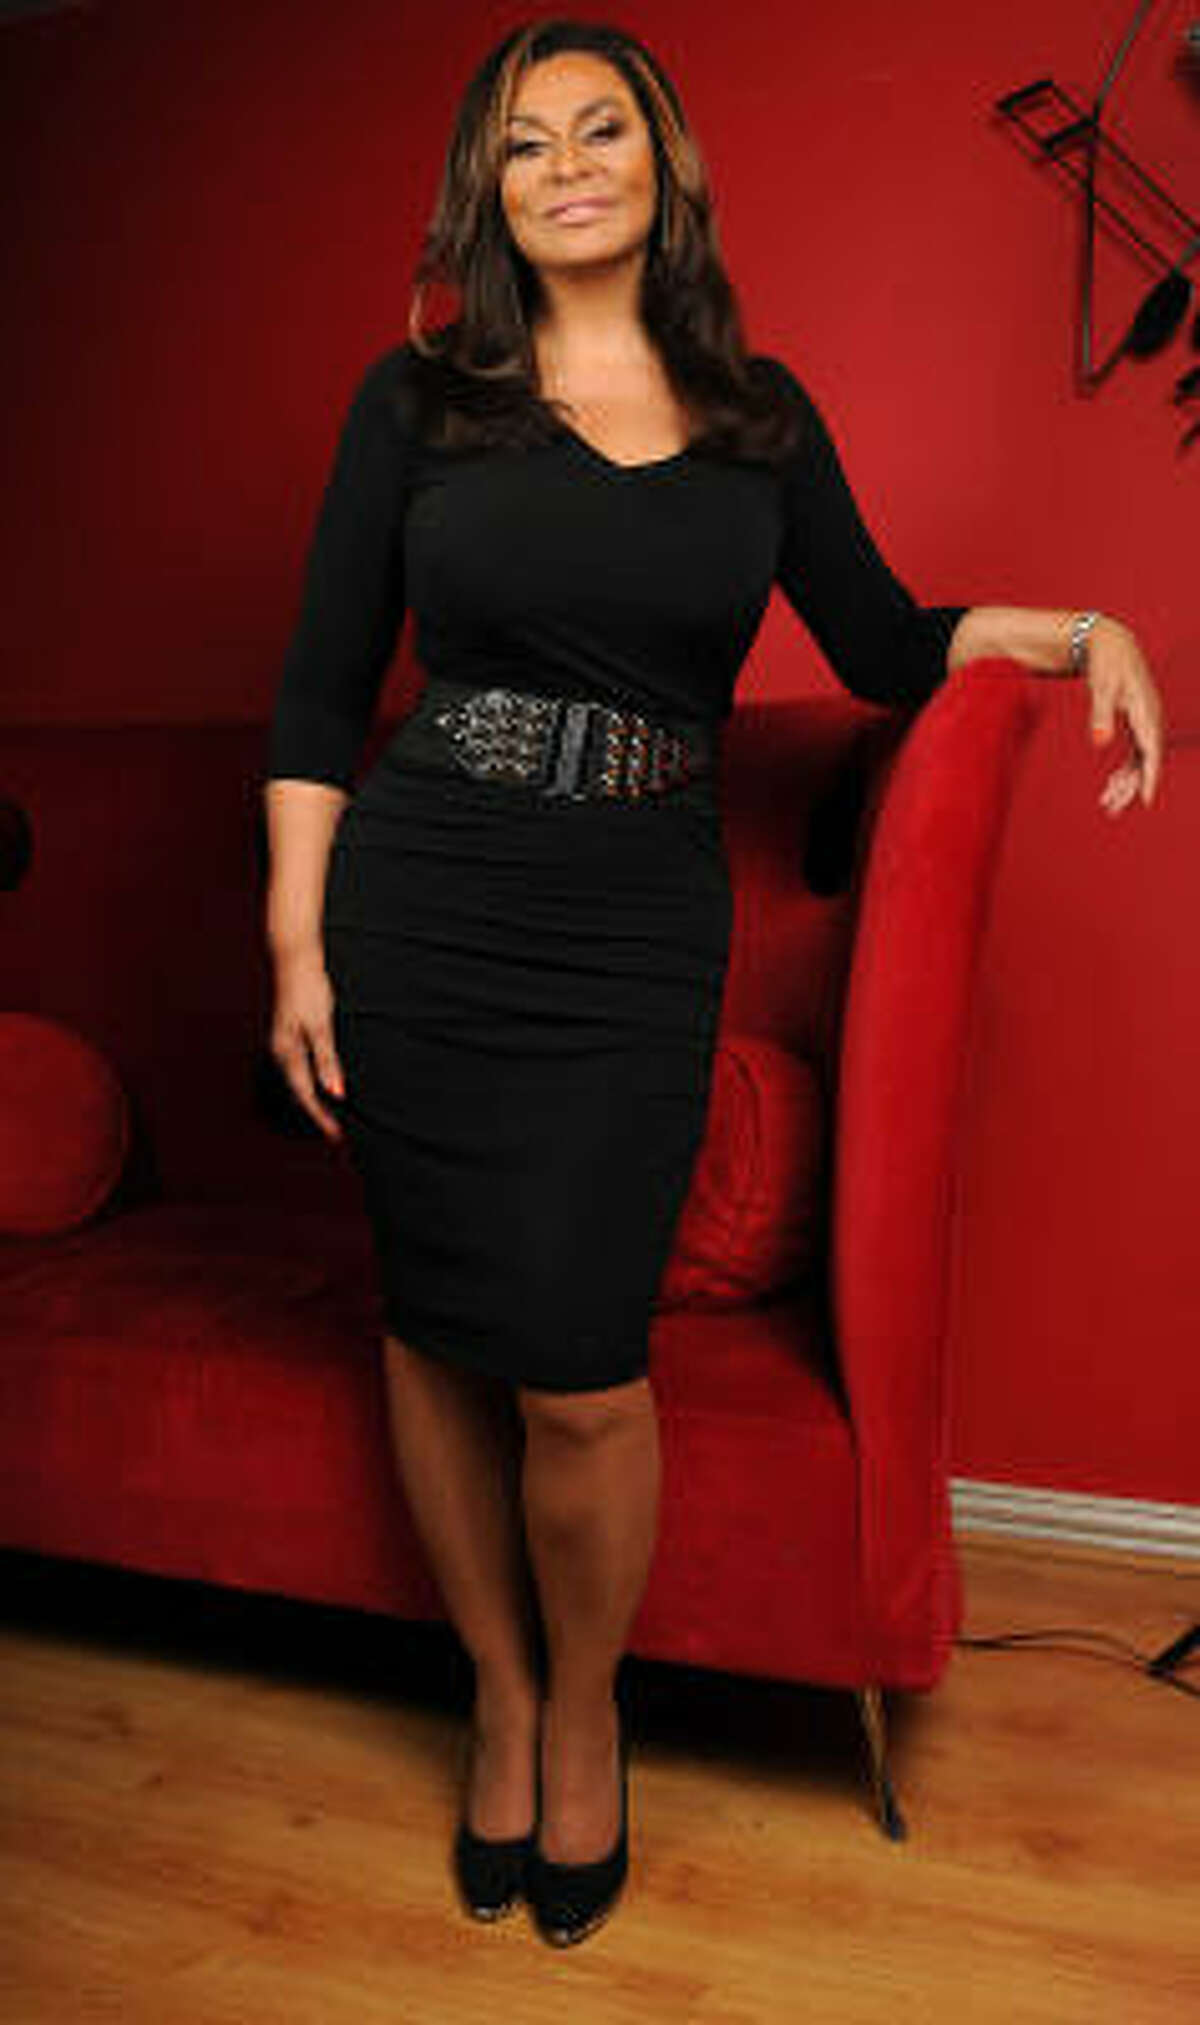 Tina Knowles at the House of Dereon Media Center on Oct. 1.